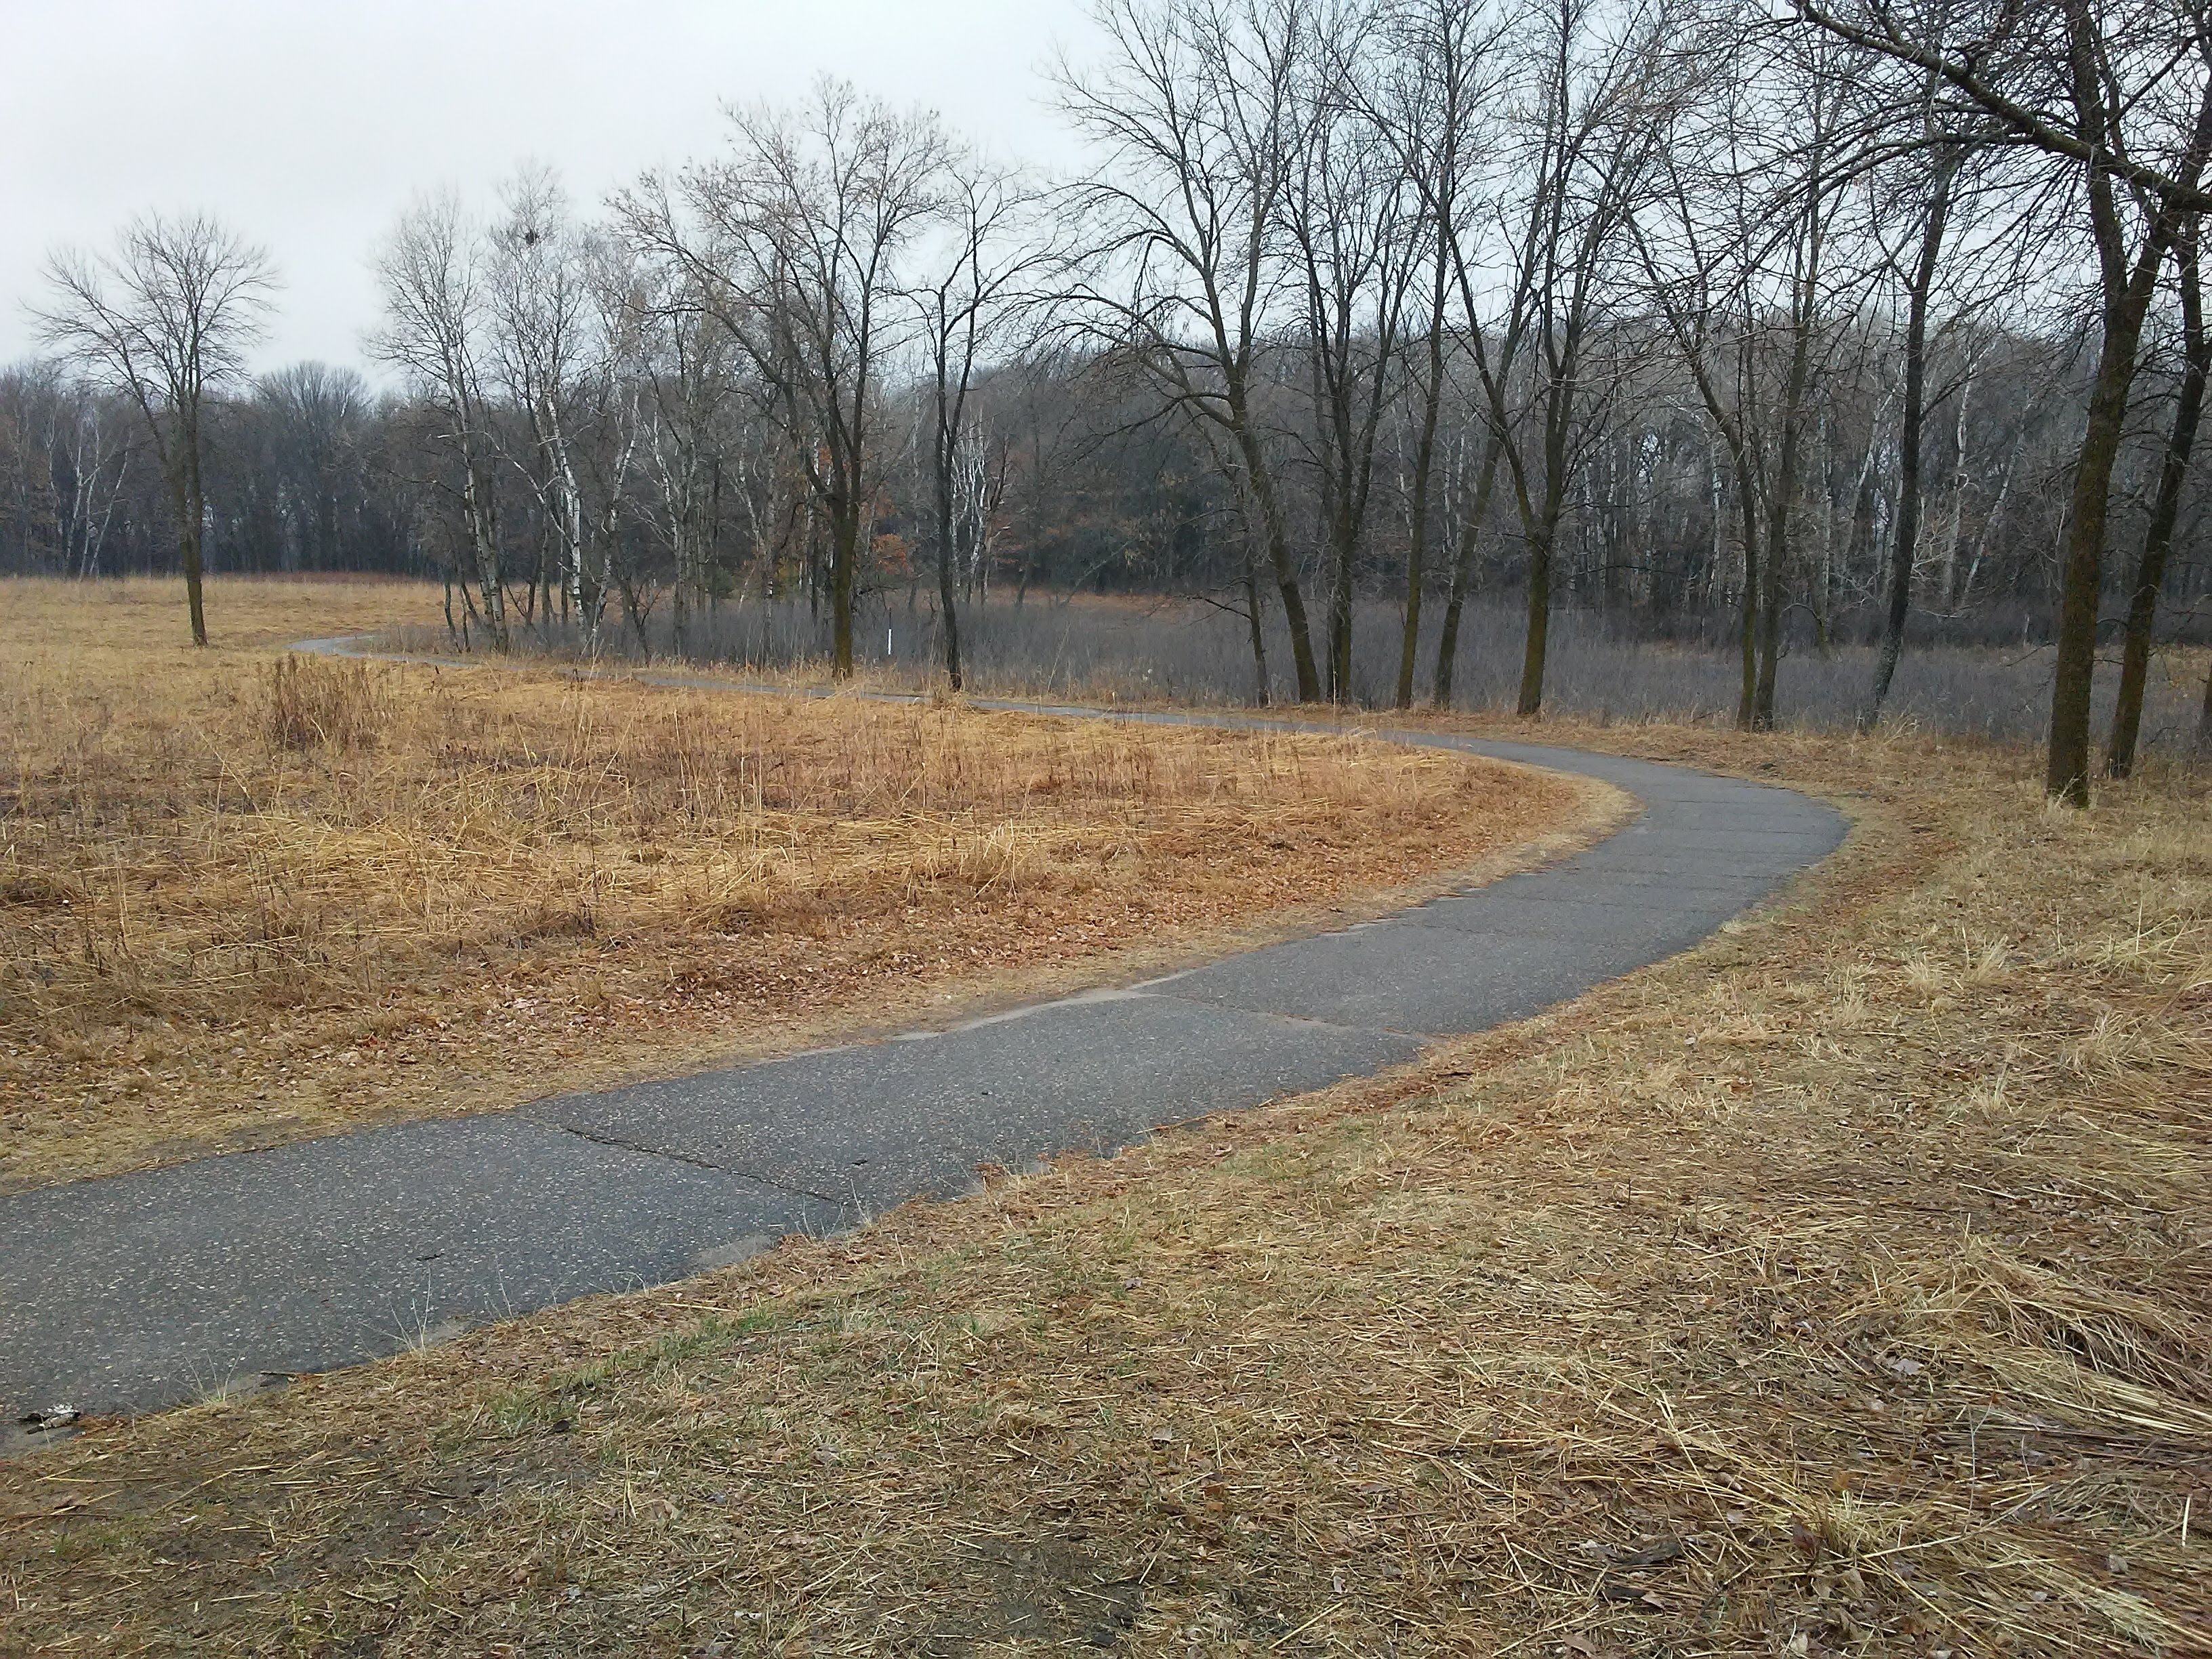 paved trail winding toward toward trees in background in early spring